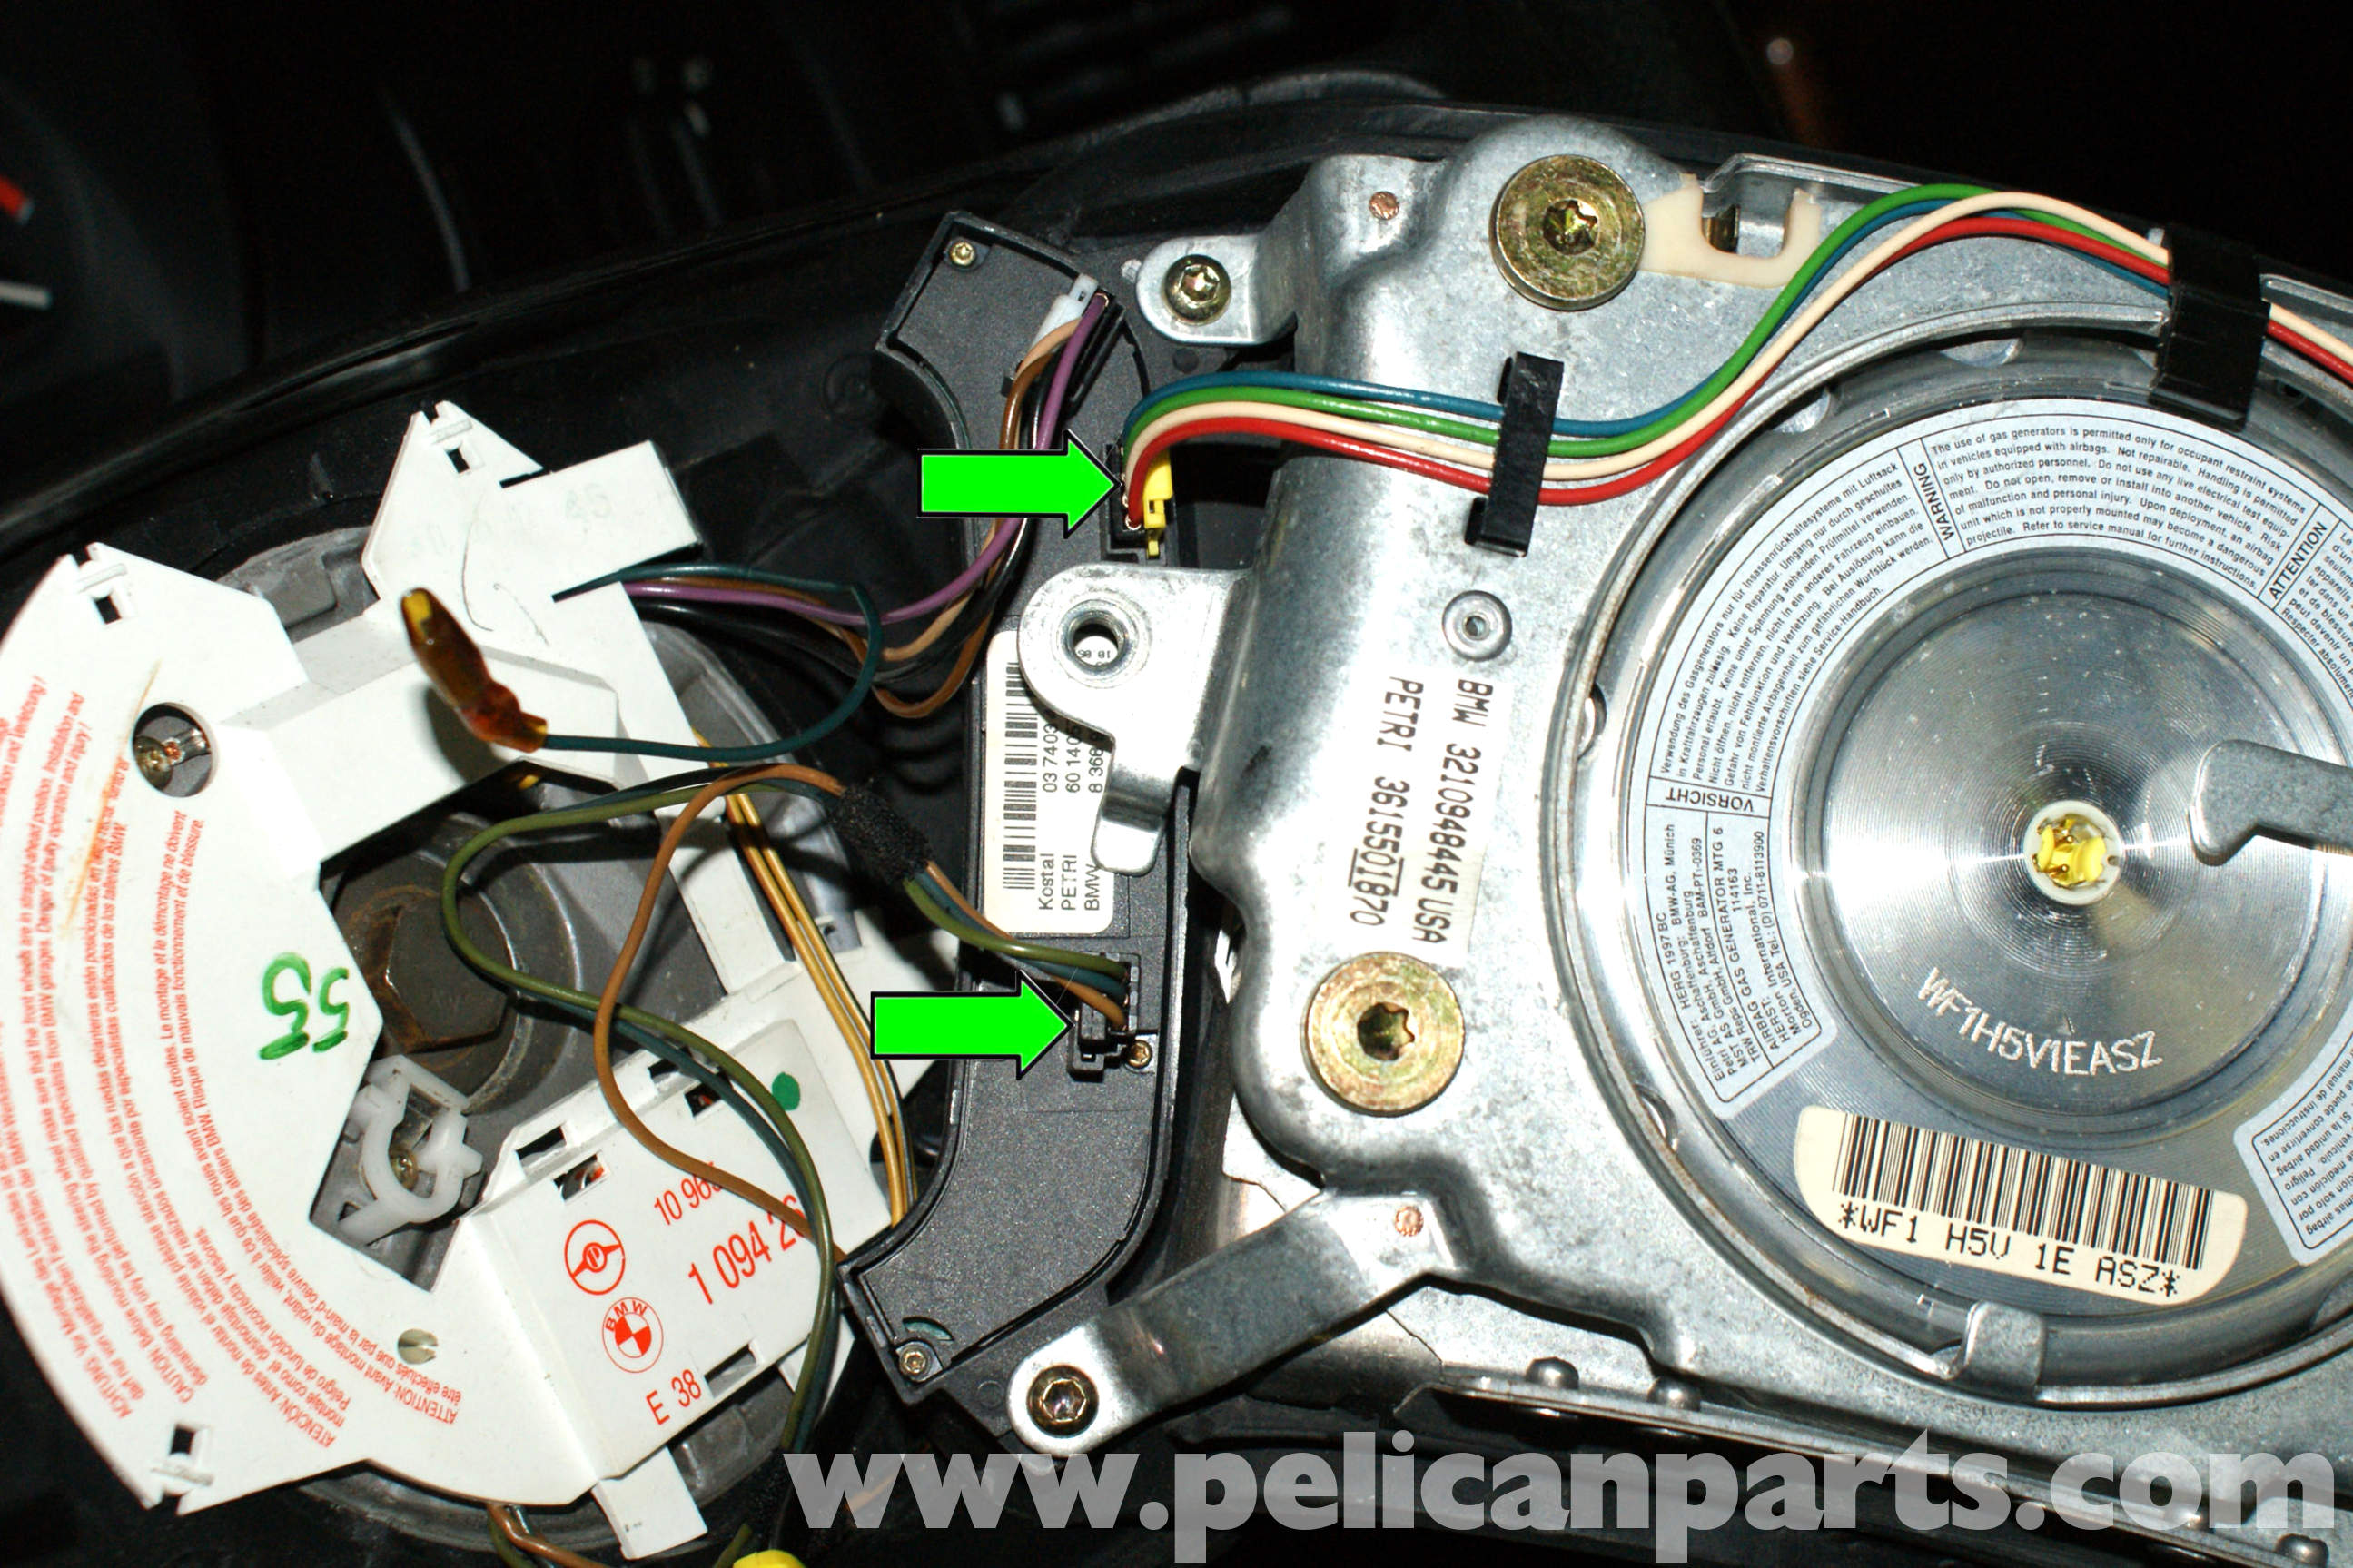 Bmw E39 5 Series Steering Wheel Removal 1997 2003 525i 528i 530i Find Wiring Diagram For Air Bag Large Image Extra